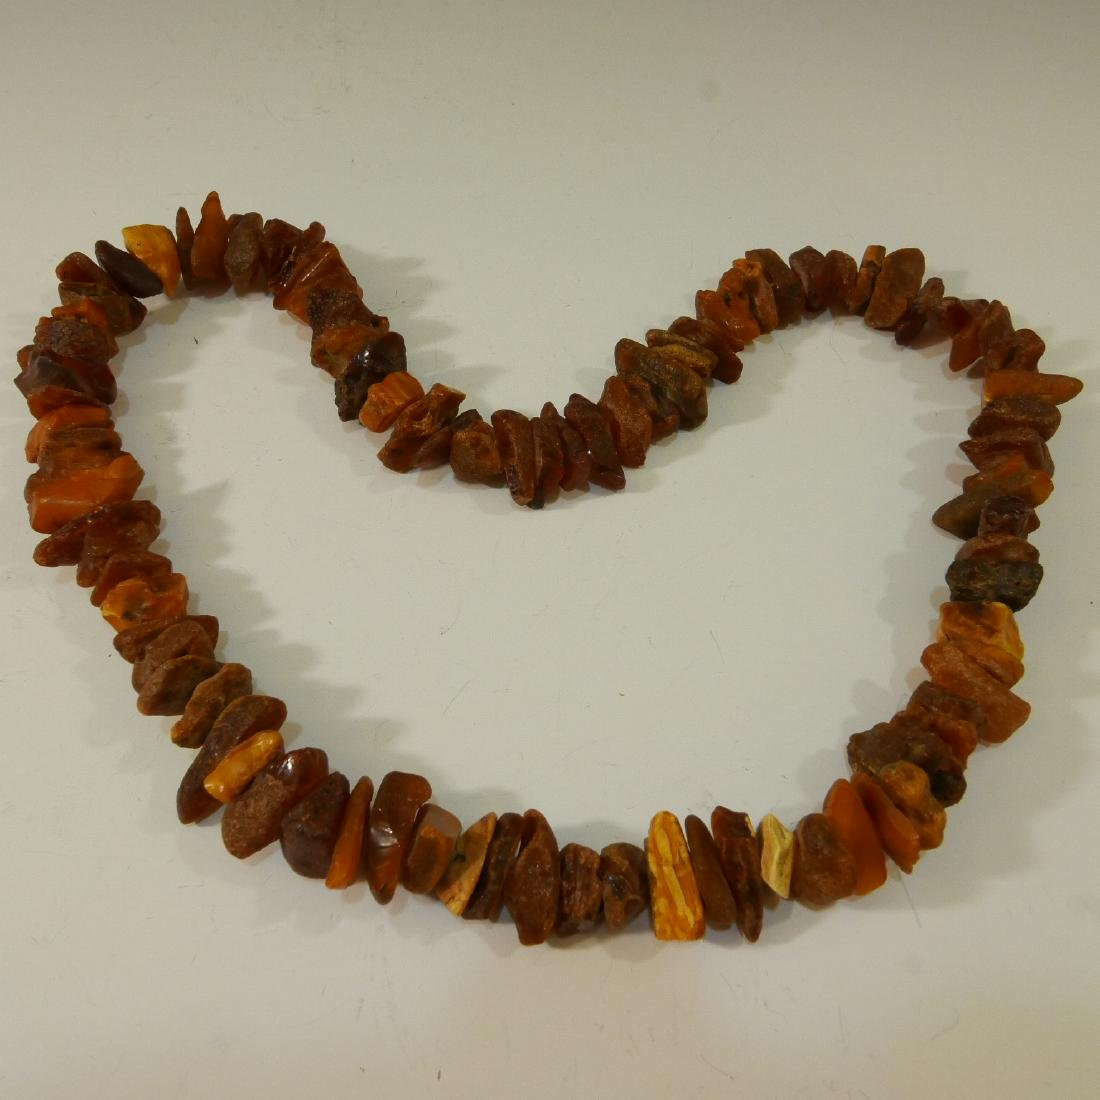 LARGE NATURAL BALTIC AMBER MILA NECKLACE - 2